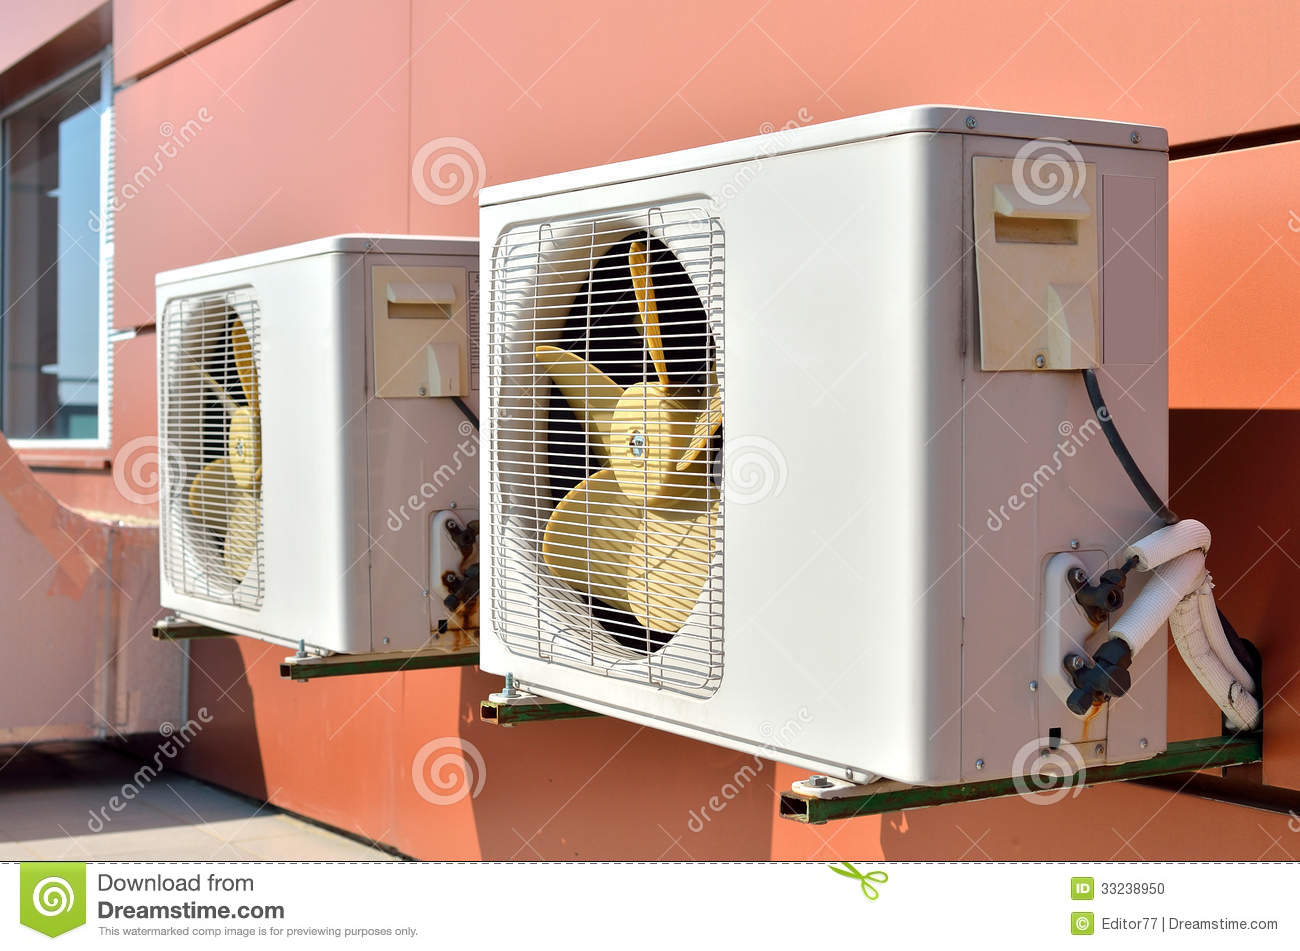 Air Conditioning Devices On The Wall Stock Photo Image: 33238950 #A84323